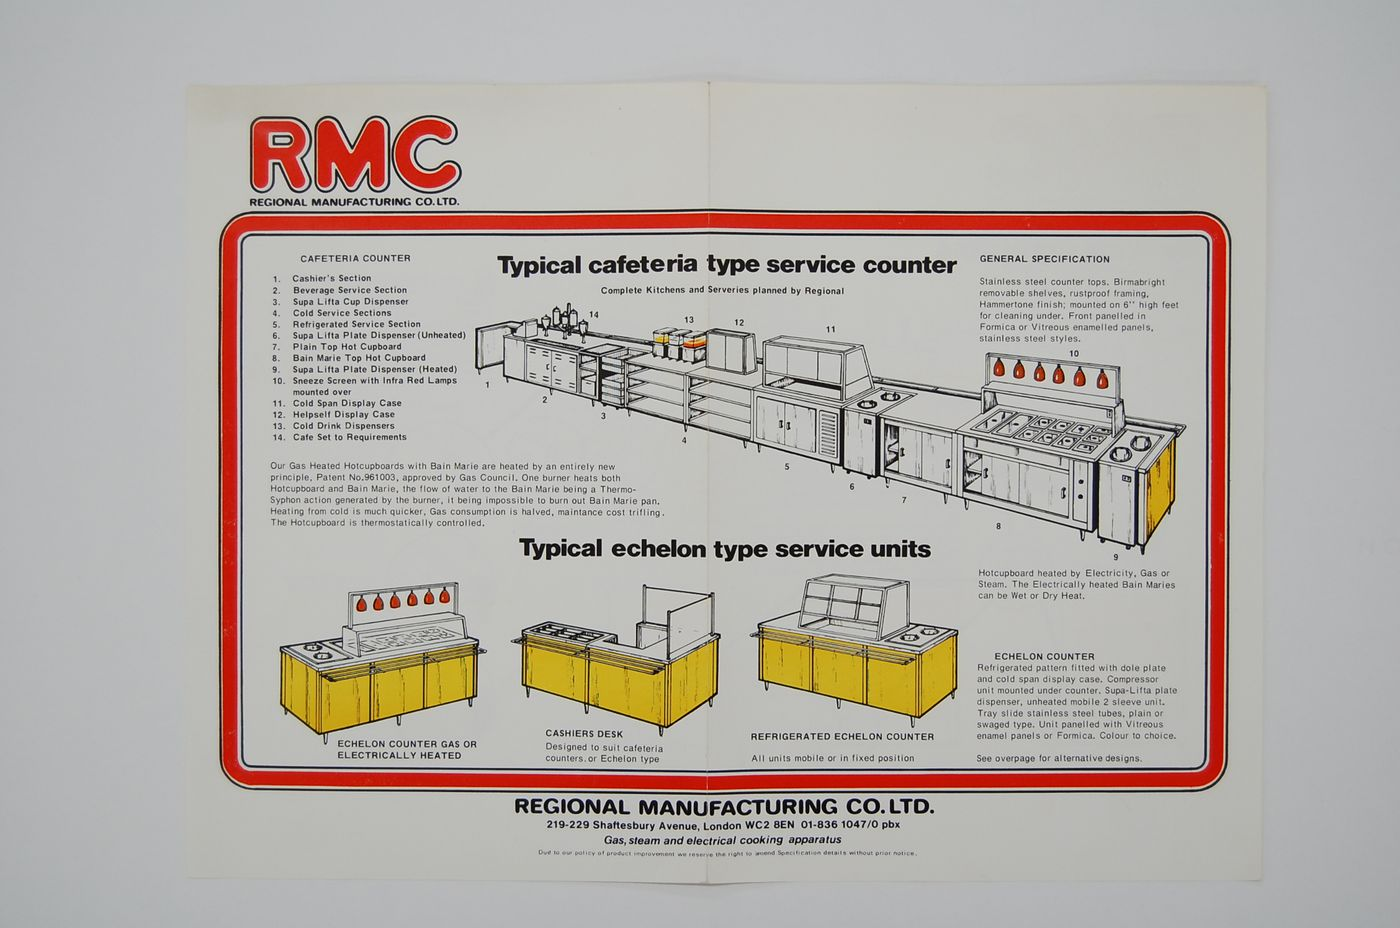 Broadside advertising RMC typical cafeteria type service counter